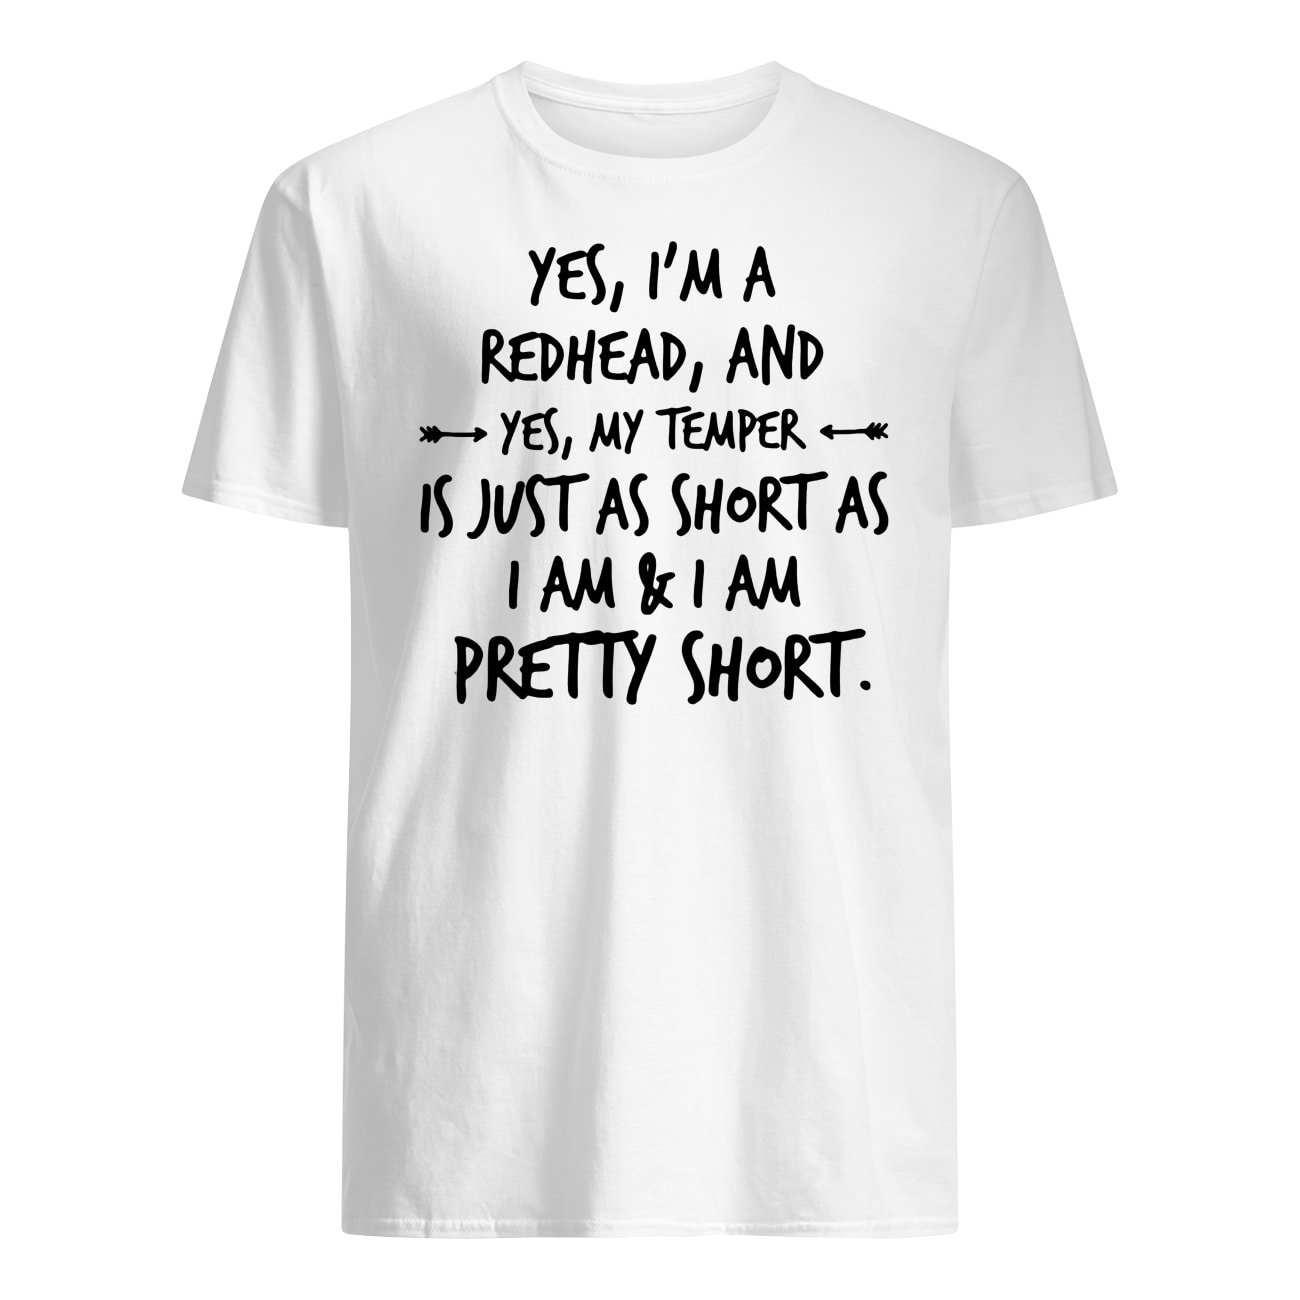 Yes I'm a redhead and yes my temper is just as short as I am mens shirt